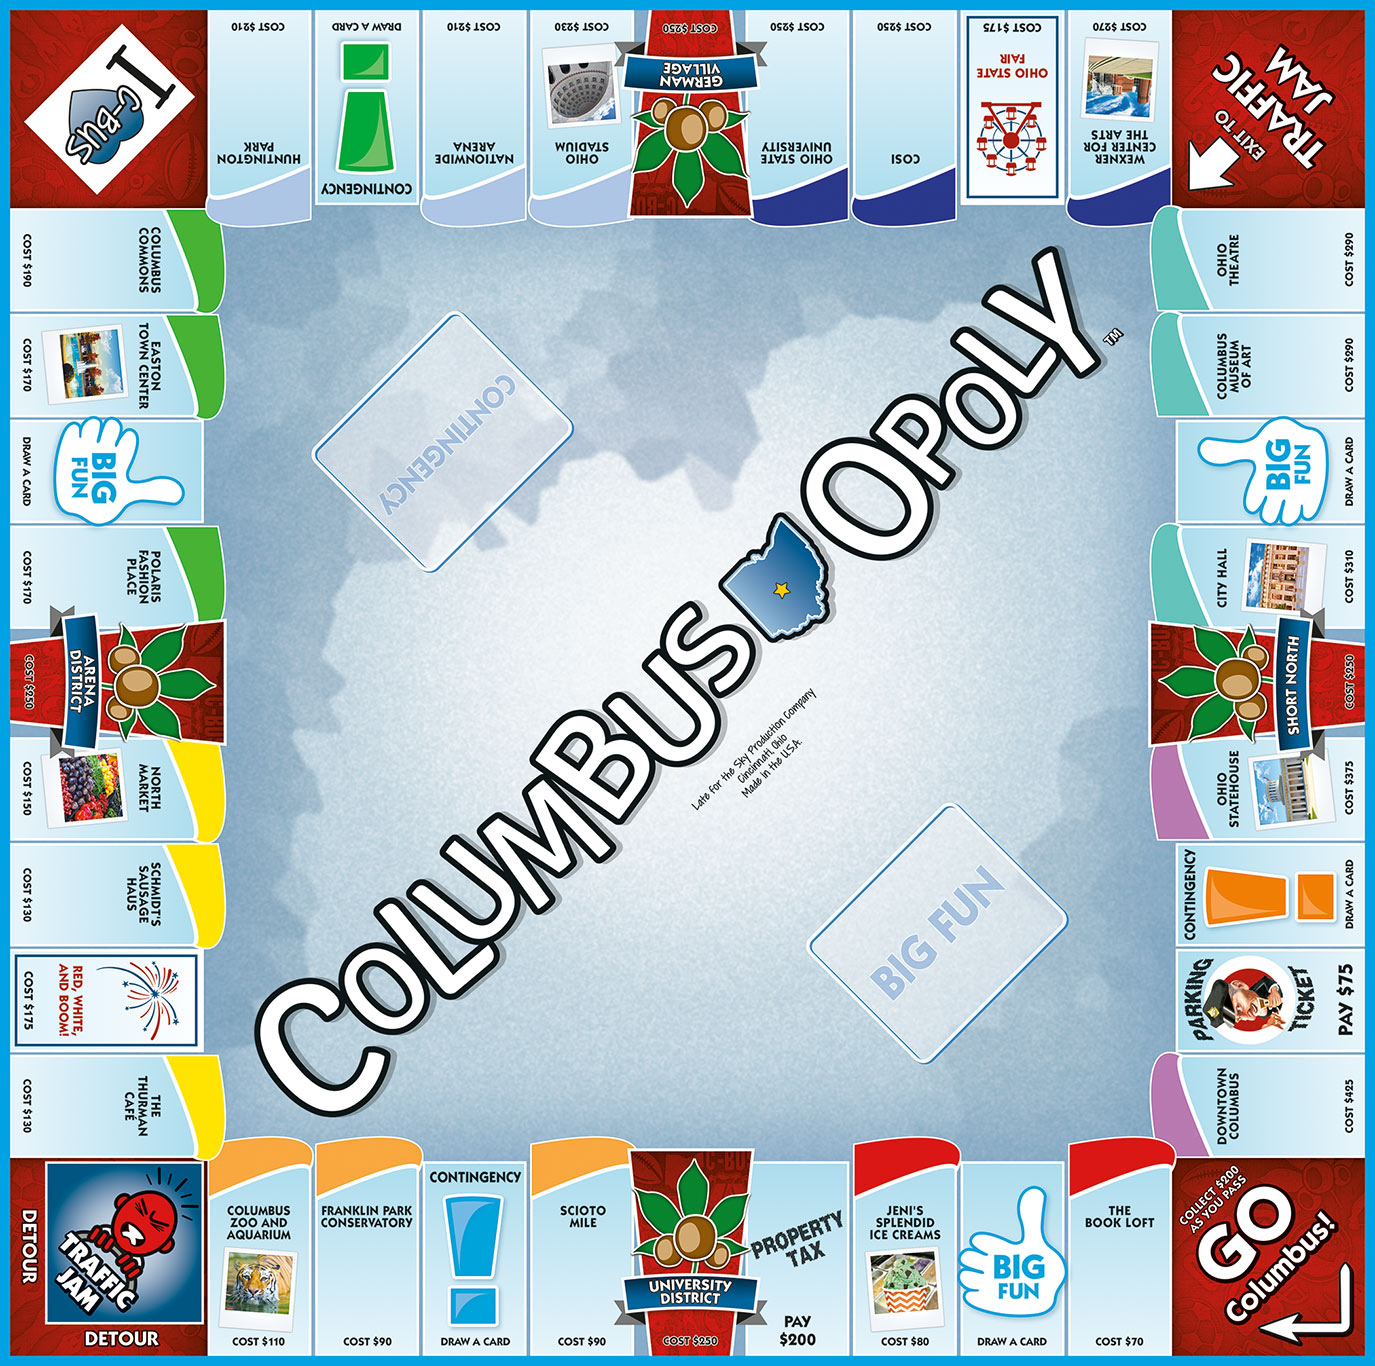 COLUMBUS-OPOLY Board Game